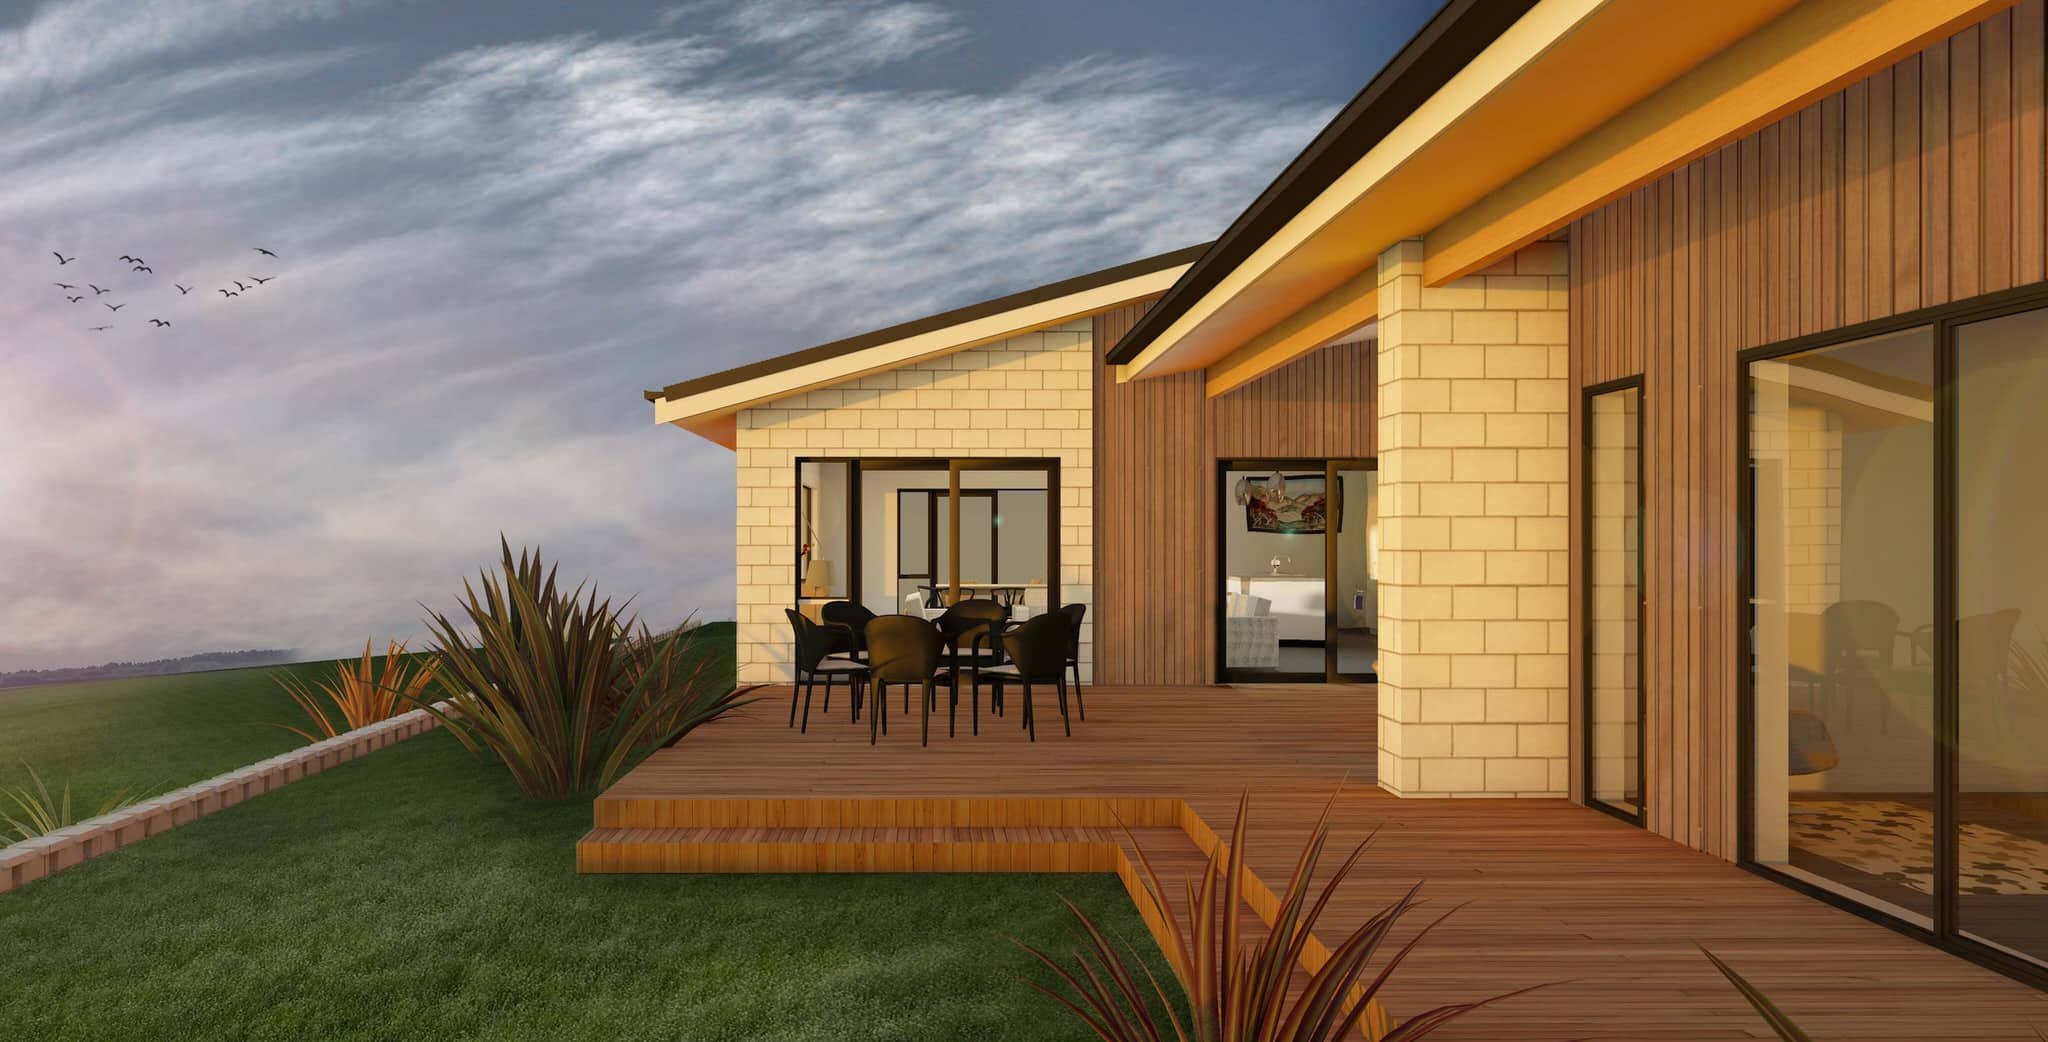 Waikato House - Exterior Deck View 1